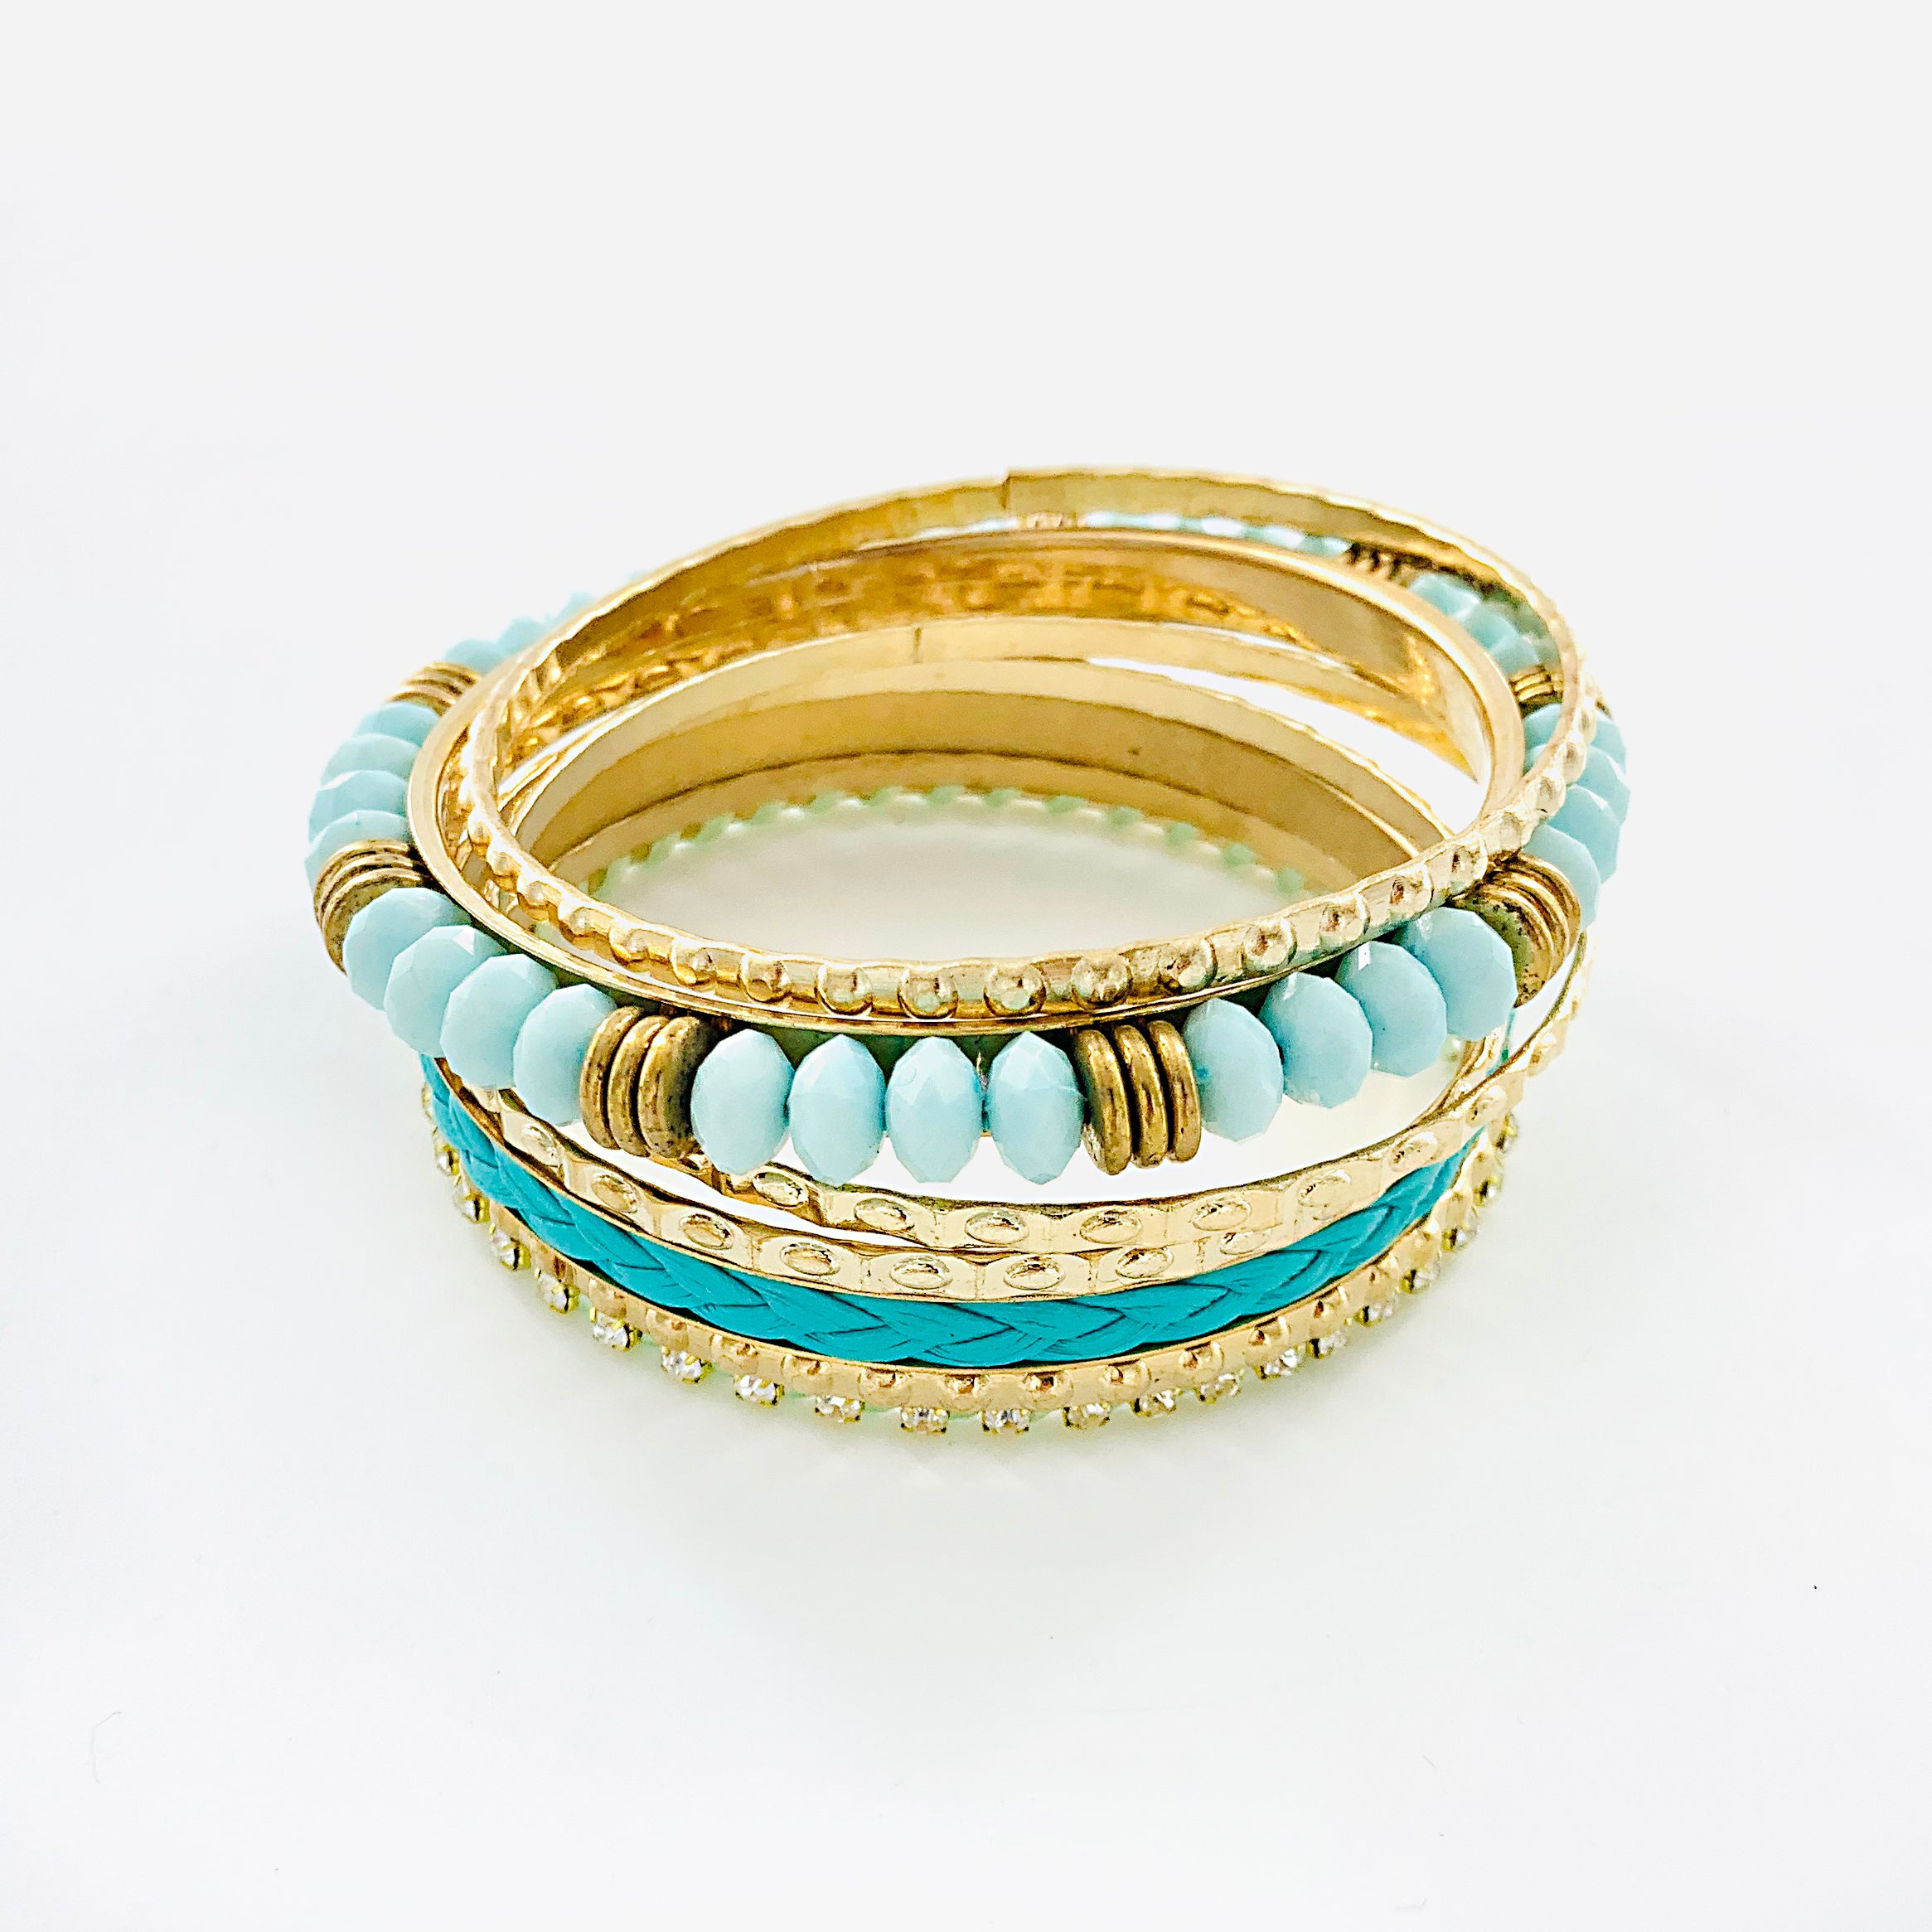 Gold Bangles with Turquoise beads and Diamante stones